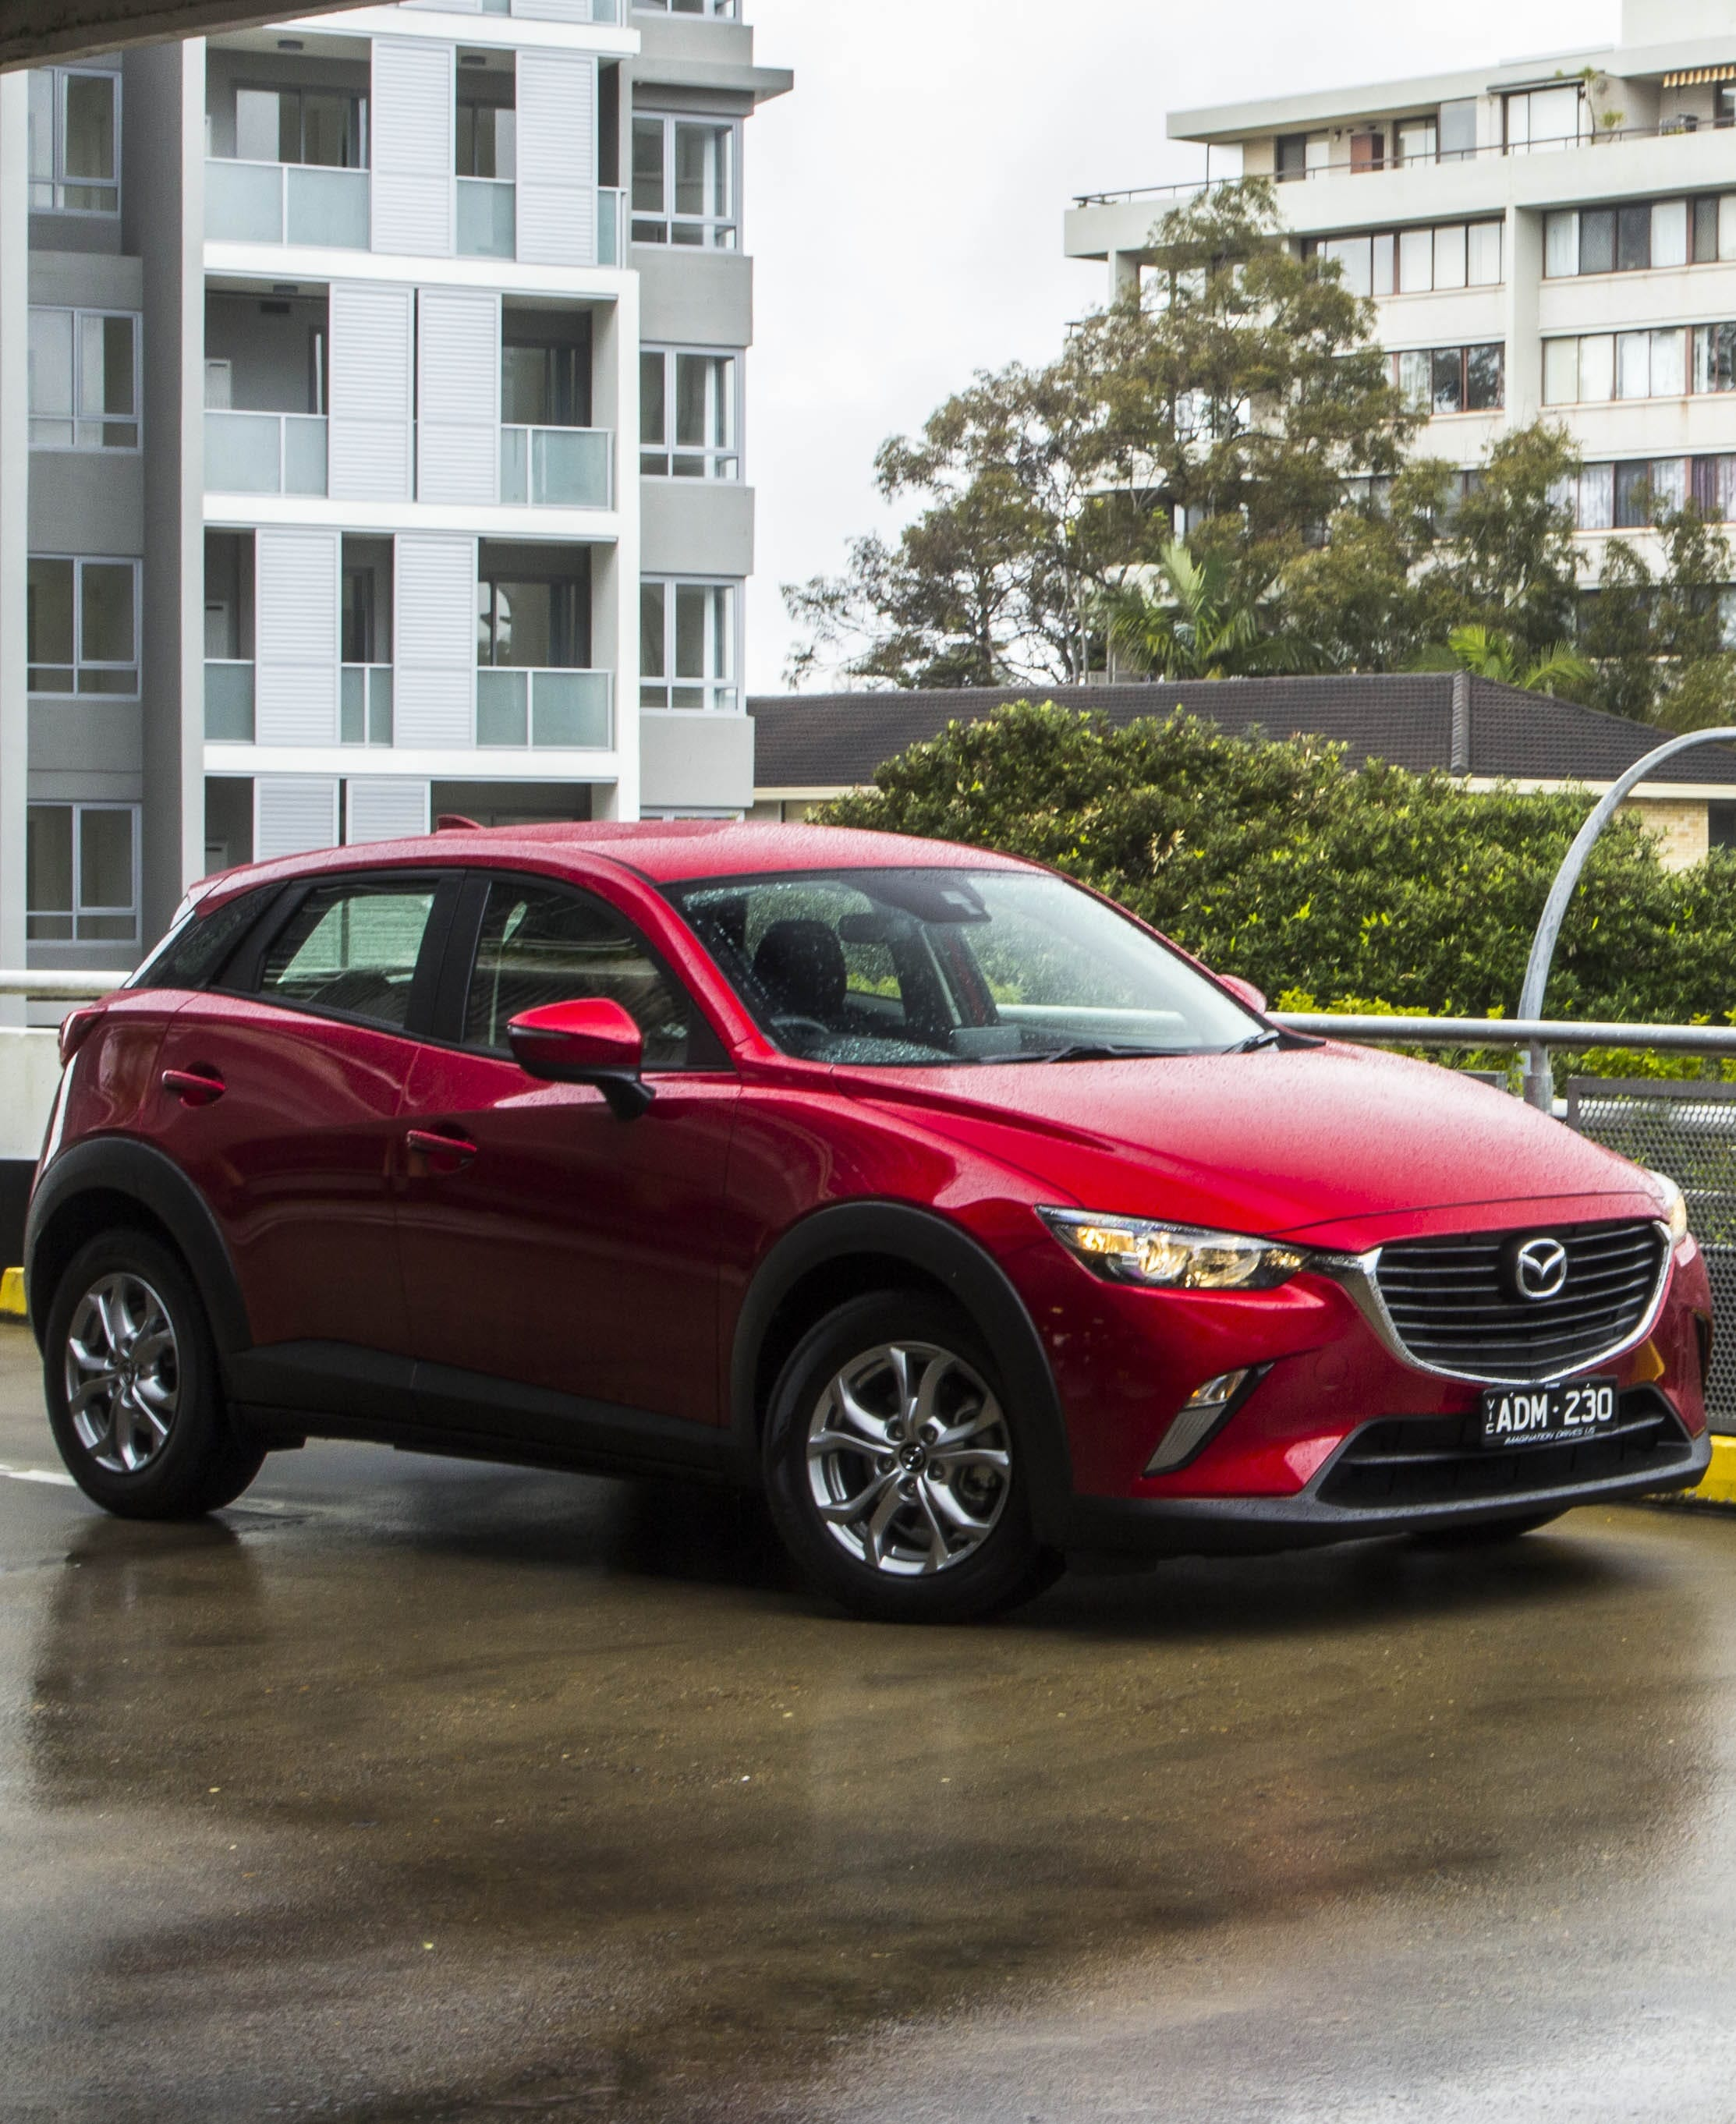 Mazda CX-3 For mobile